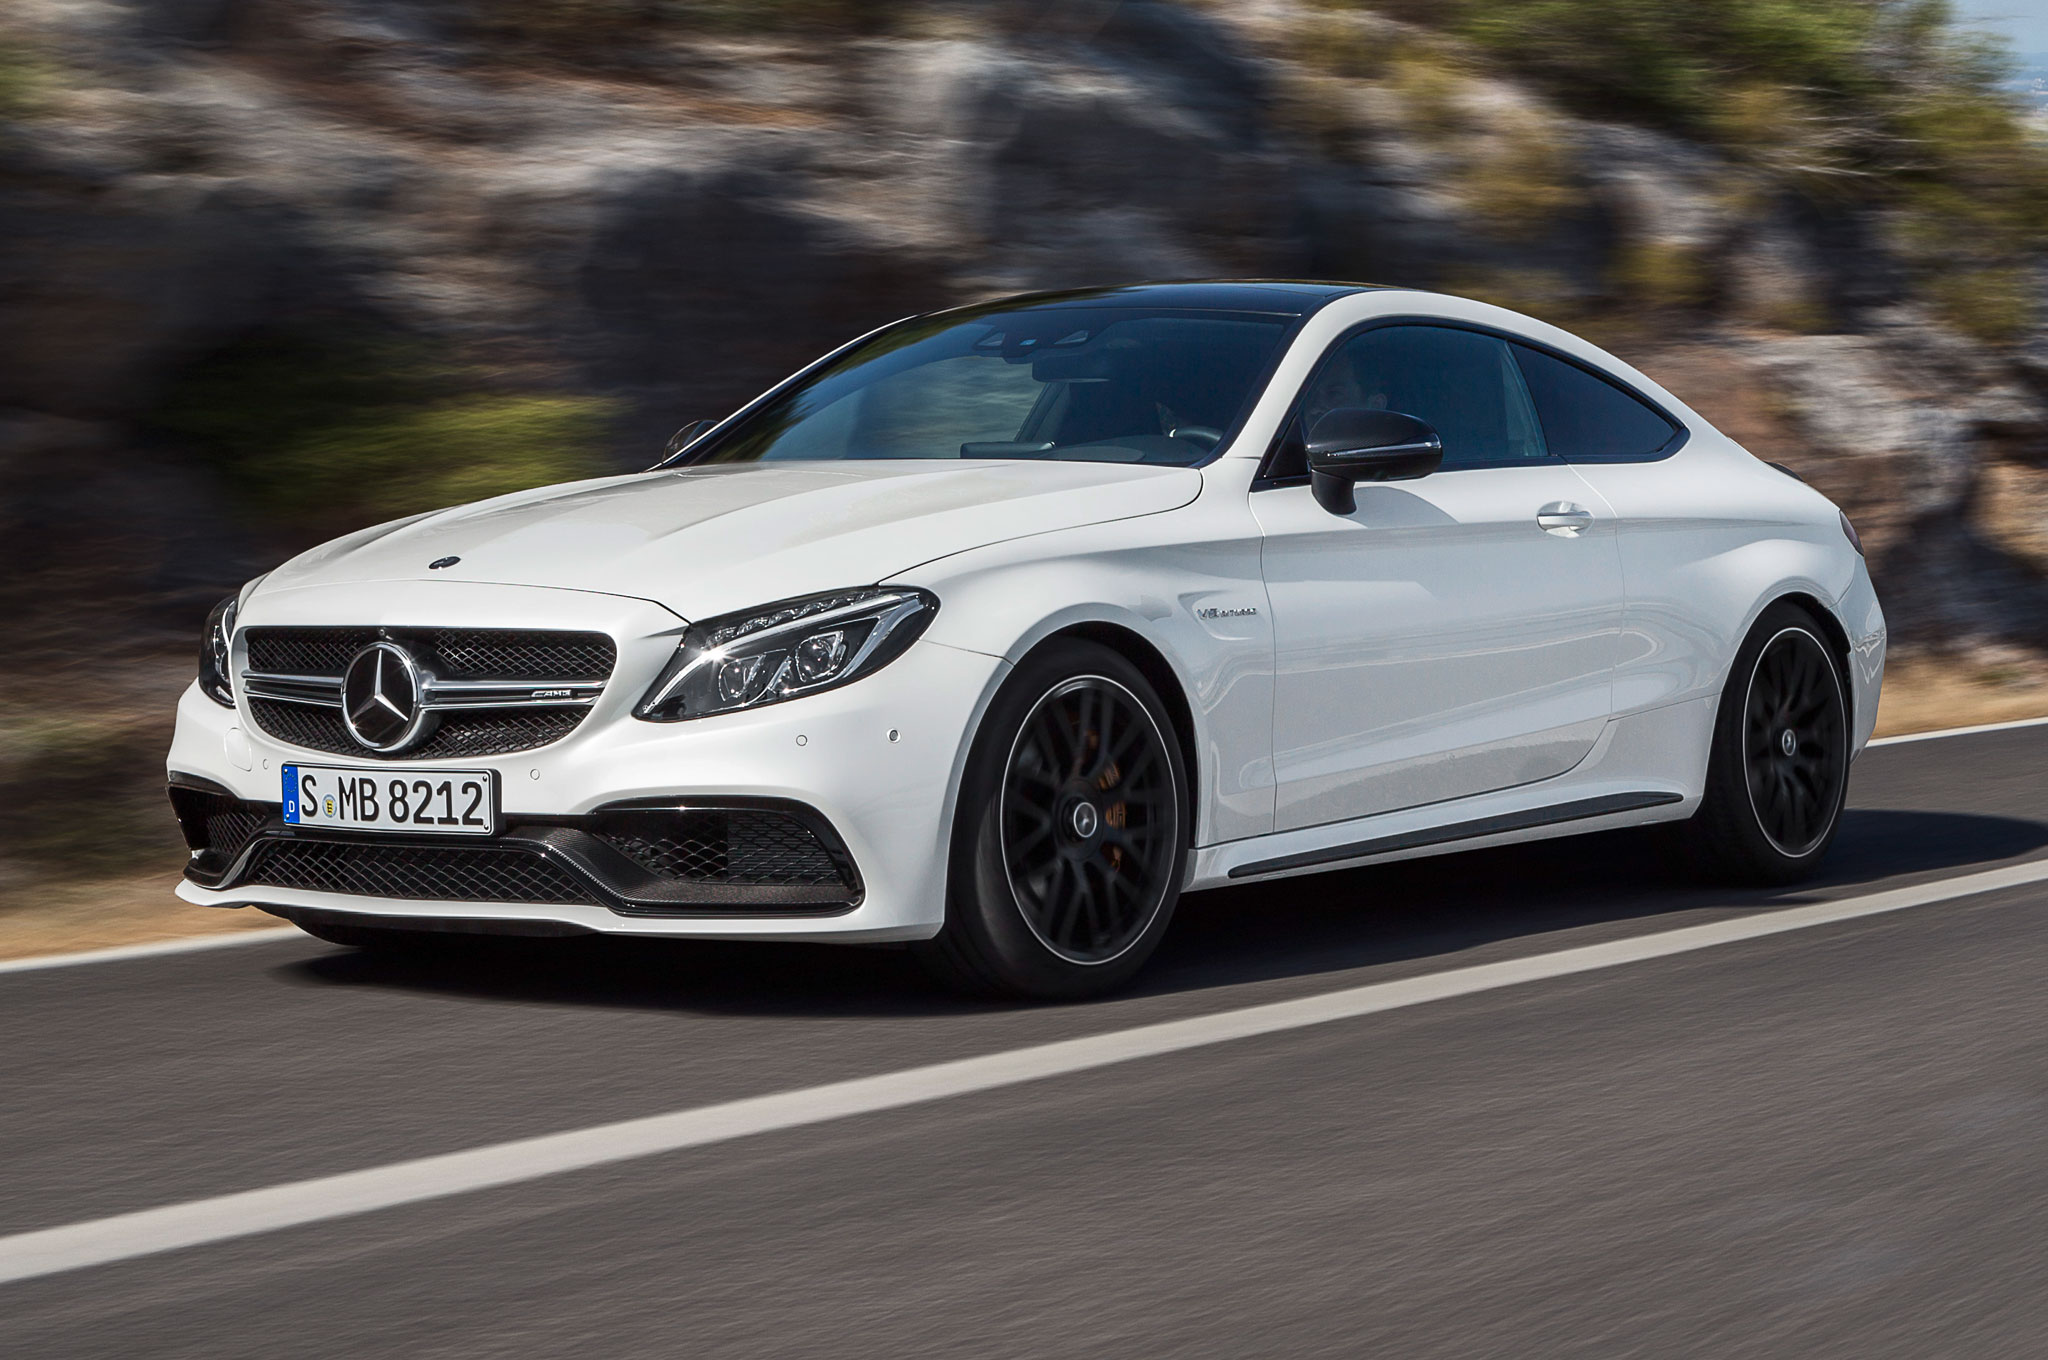 2017 Mercedes Amg C63 Coupe Brings Twin Turbo Punch With